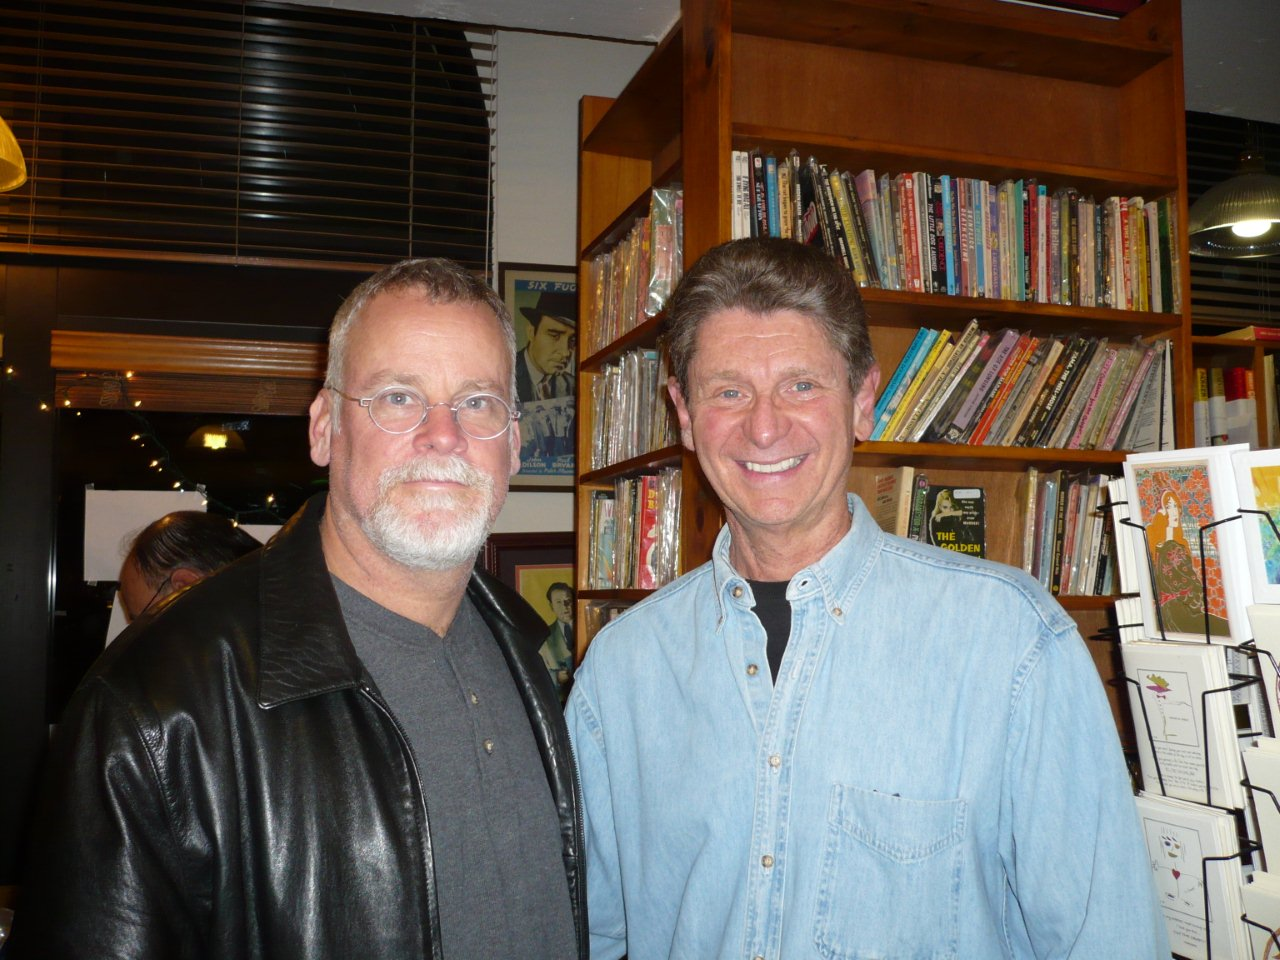 Paul with Michael Connelly